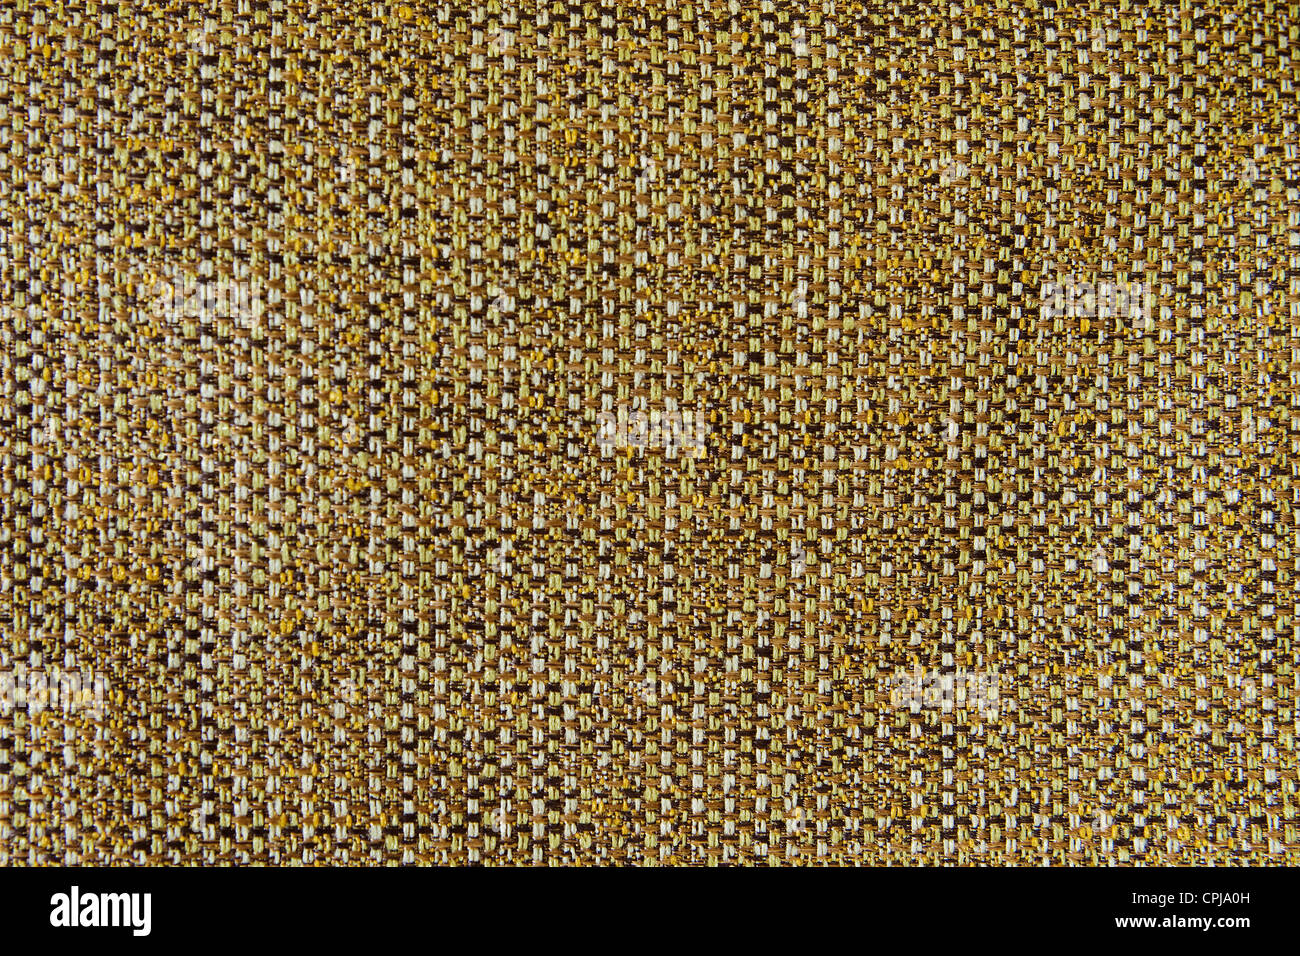 upholstery fabric texture - Stock Image